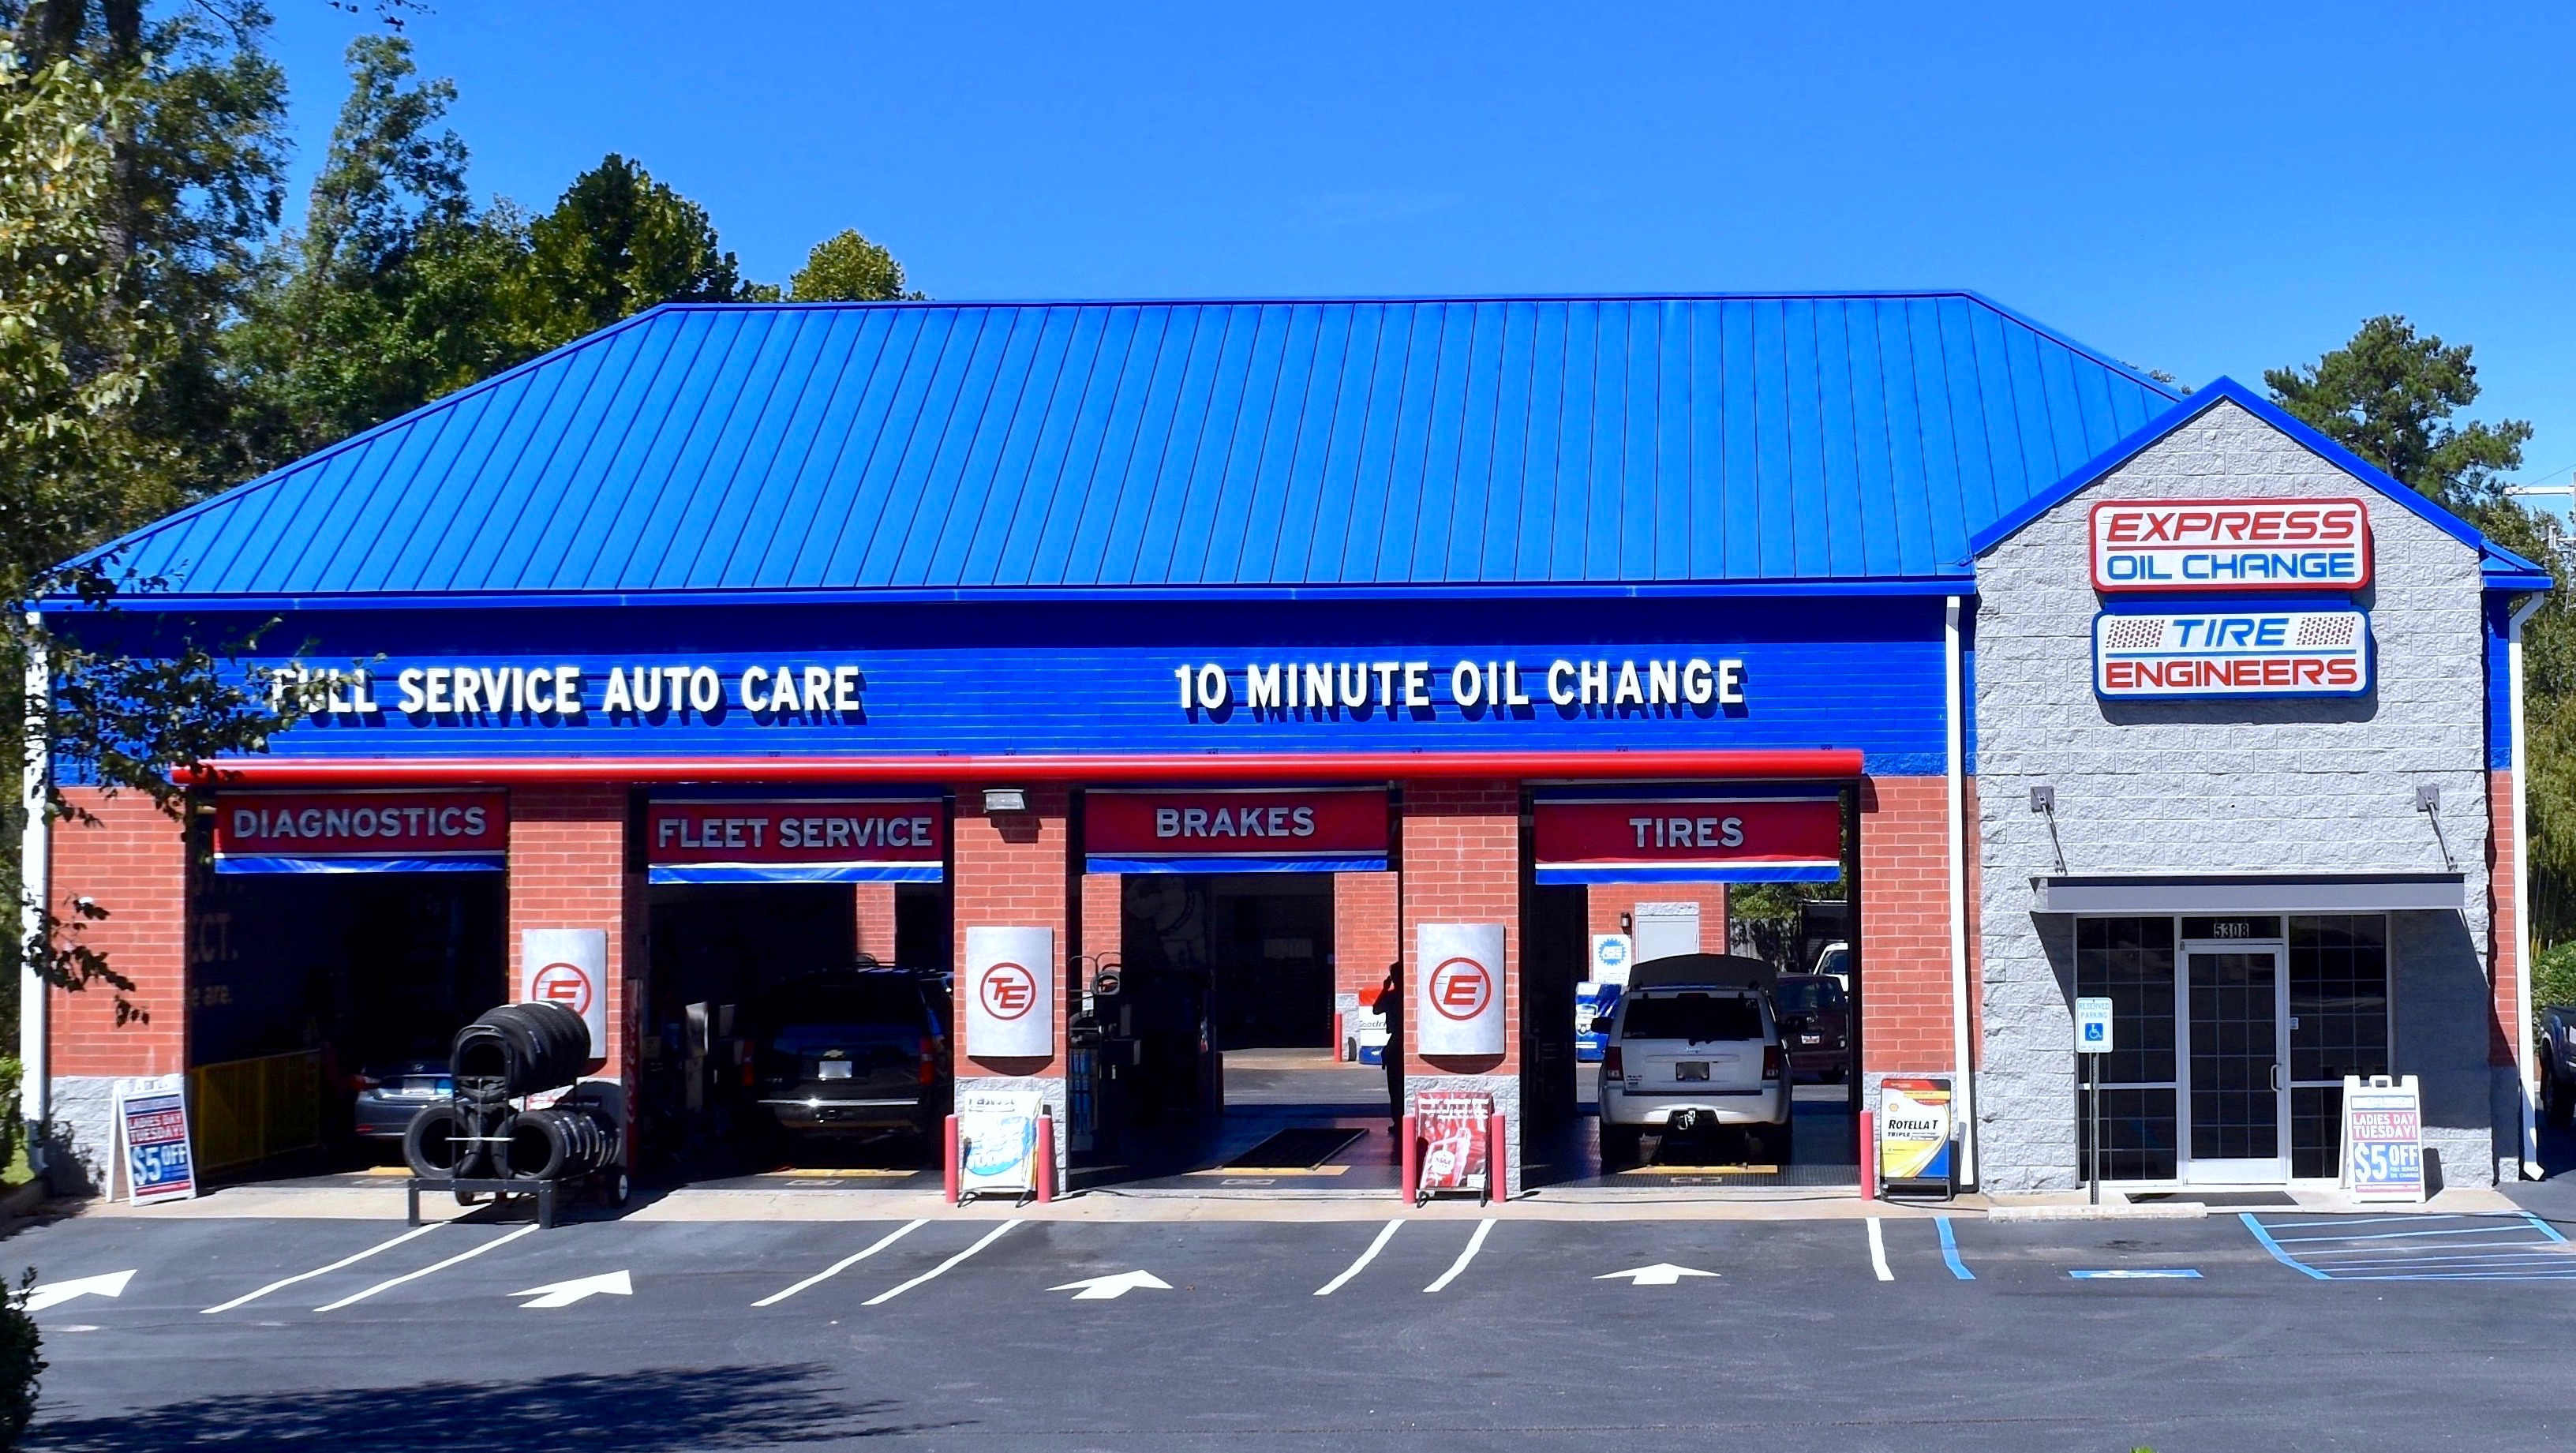 Express Oil Change & Tire Engineers at Lexington, SC - Sunset Boulevard store